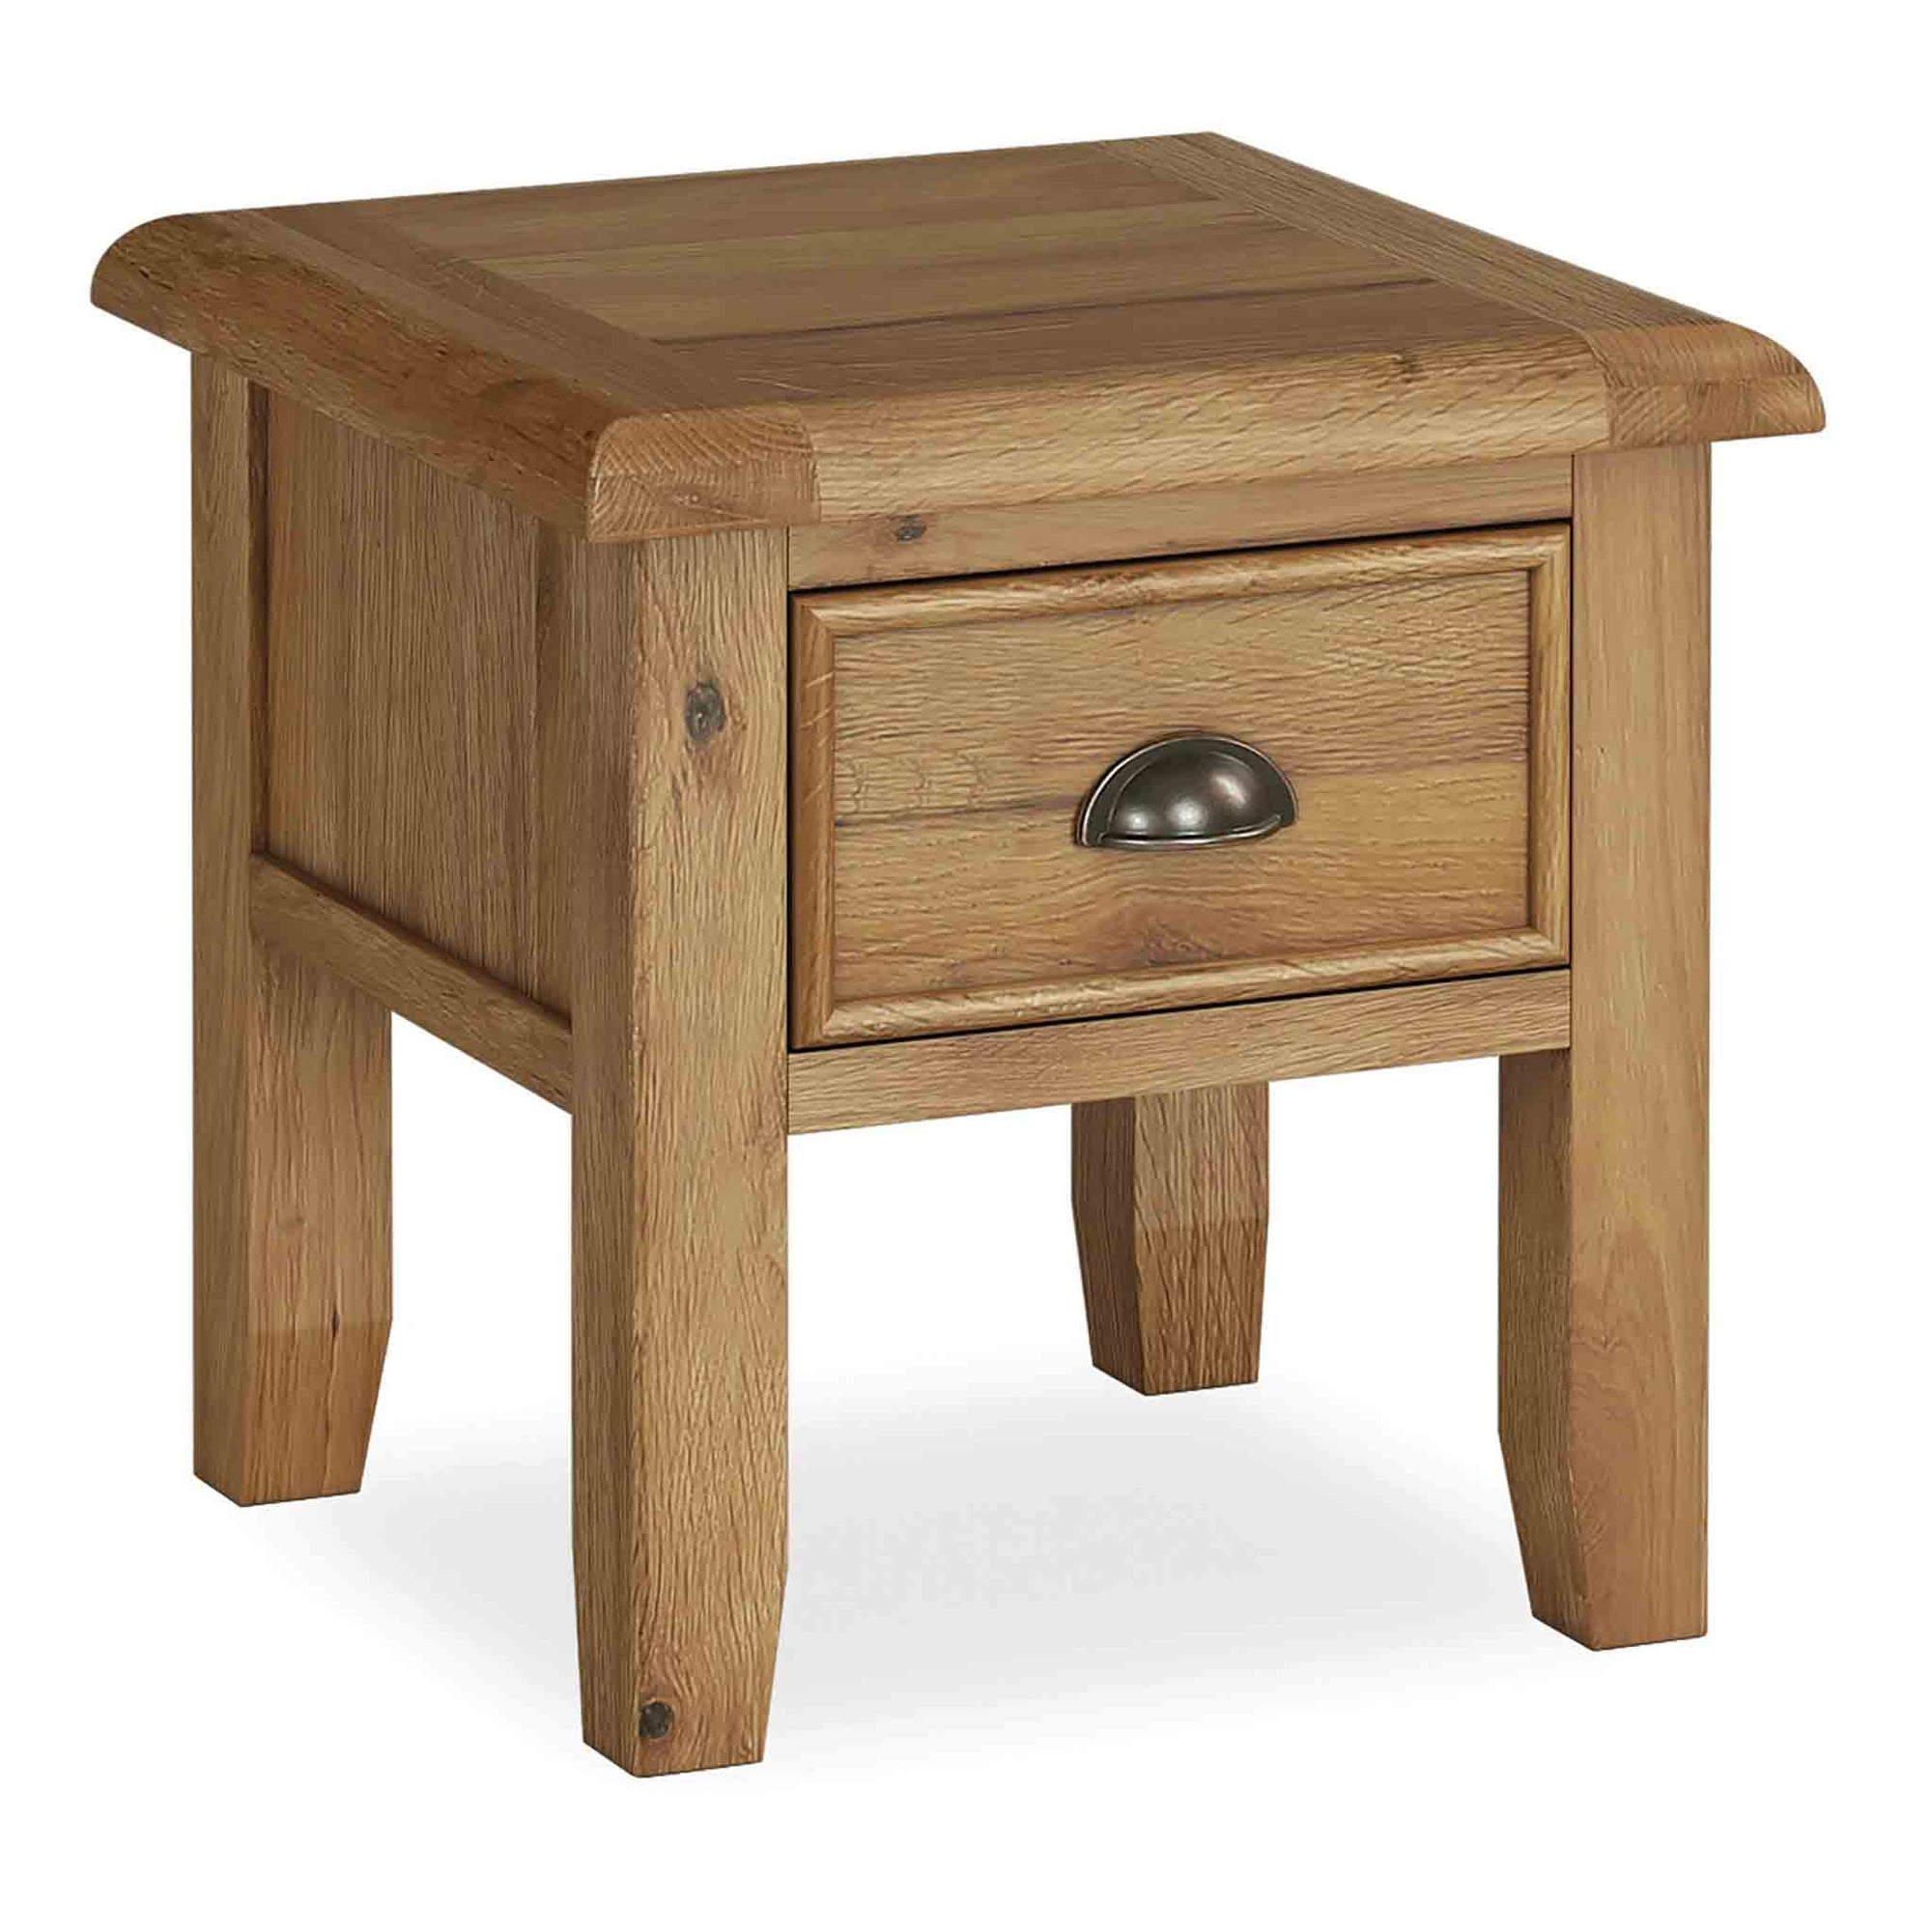 The Canterbury Oak Side Lamp Table with Storage Drawer from Roseland Furniture